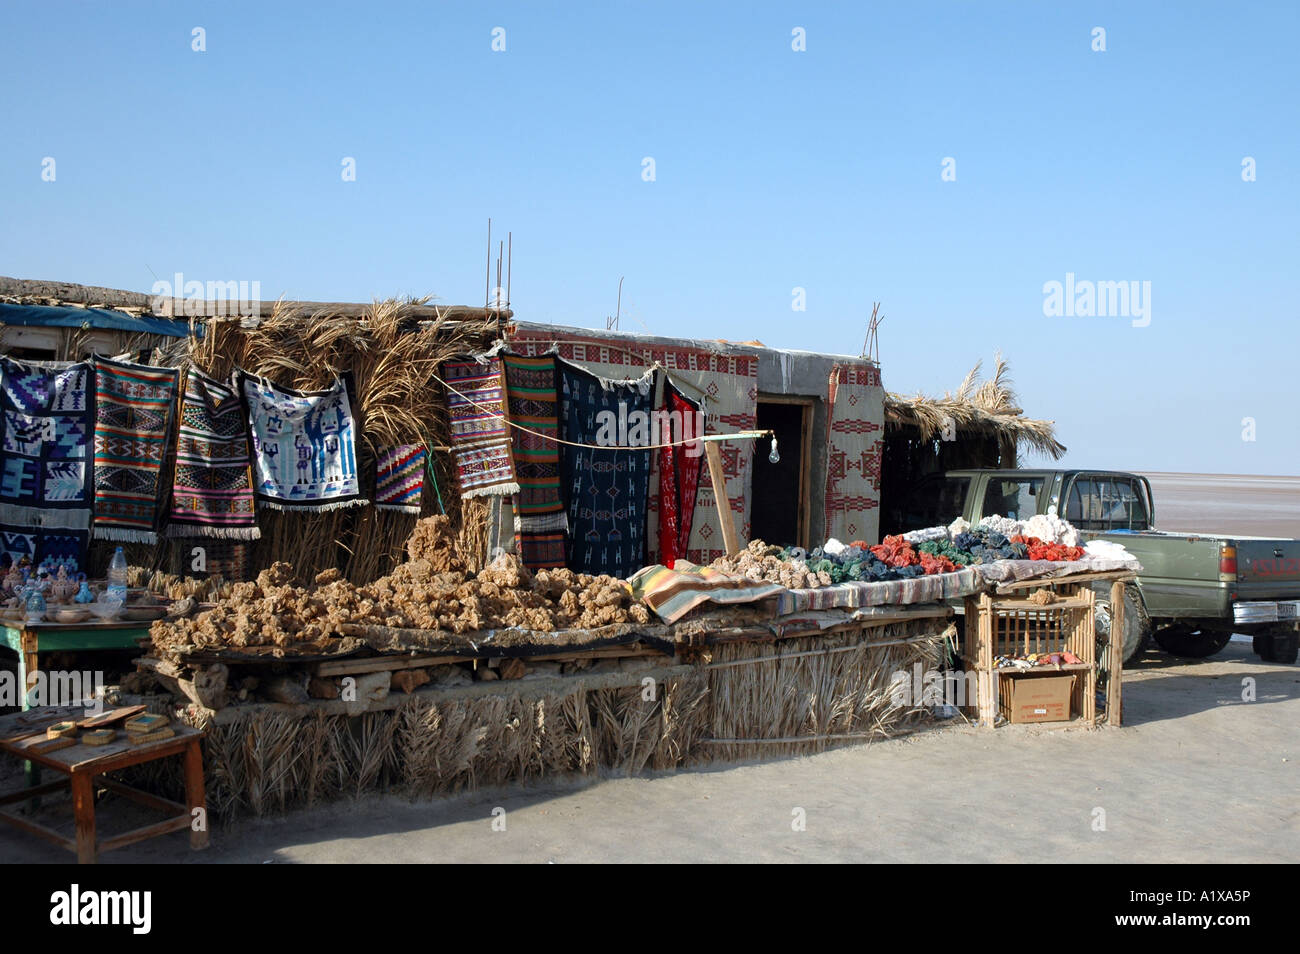 Souvenirs stall on the roadside of causeway crossing Chott el Jerid lake in Tunisia - Stock Image